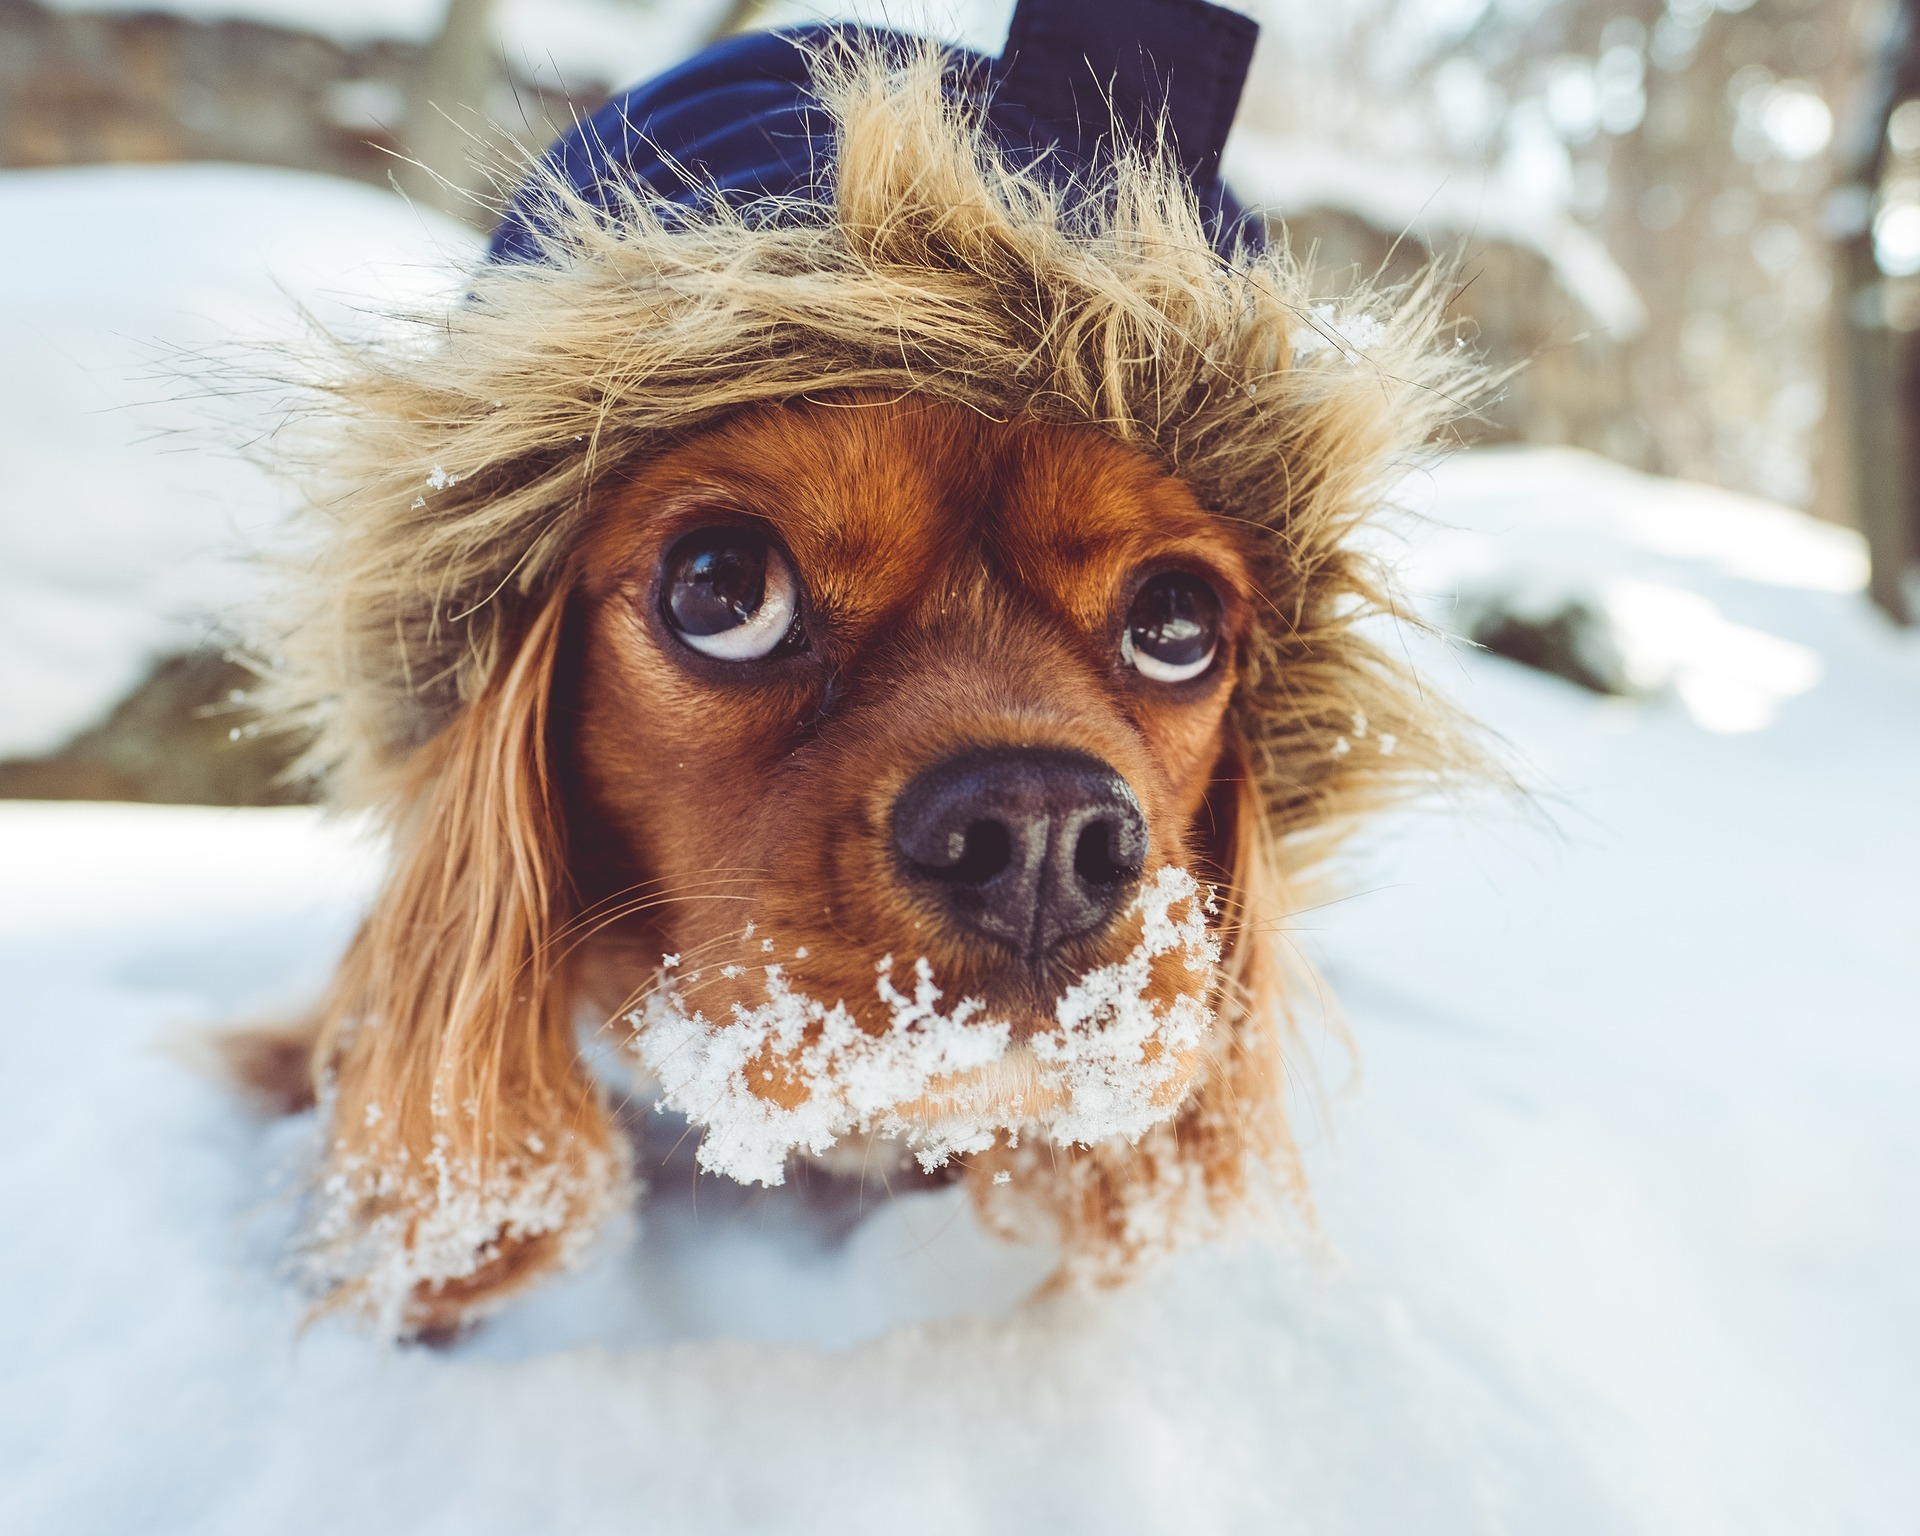 Dog in snow showing how important it is to protect those dog paws in the winter